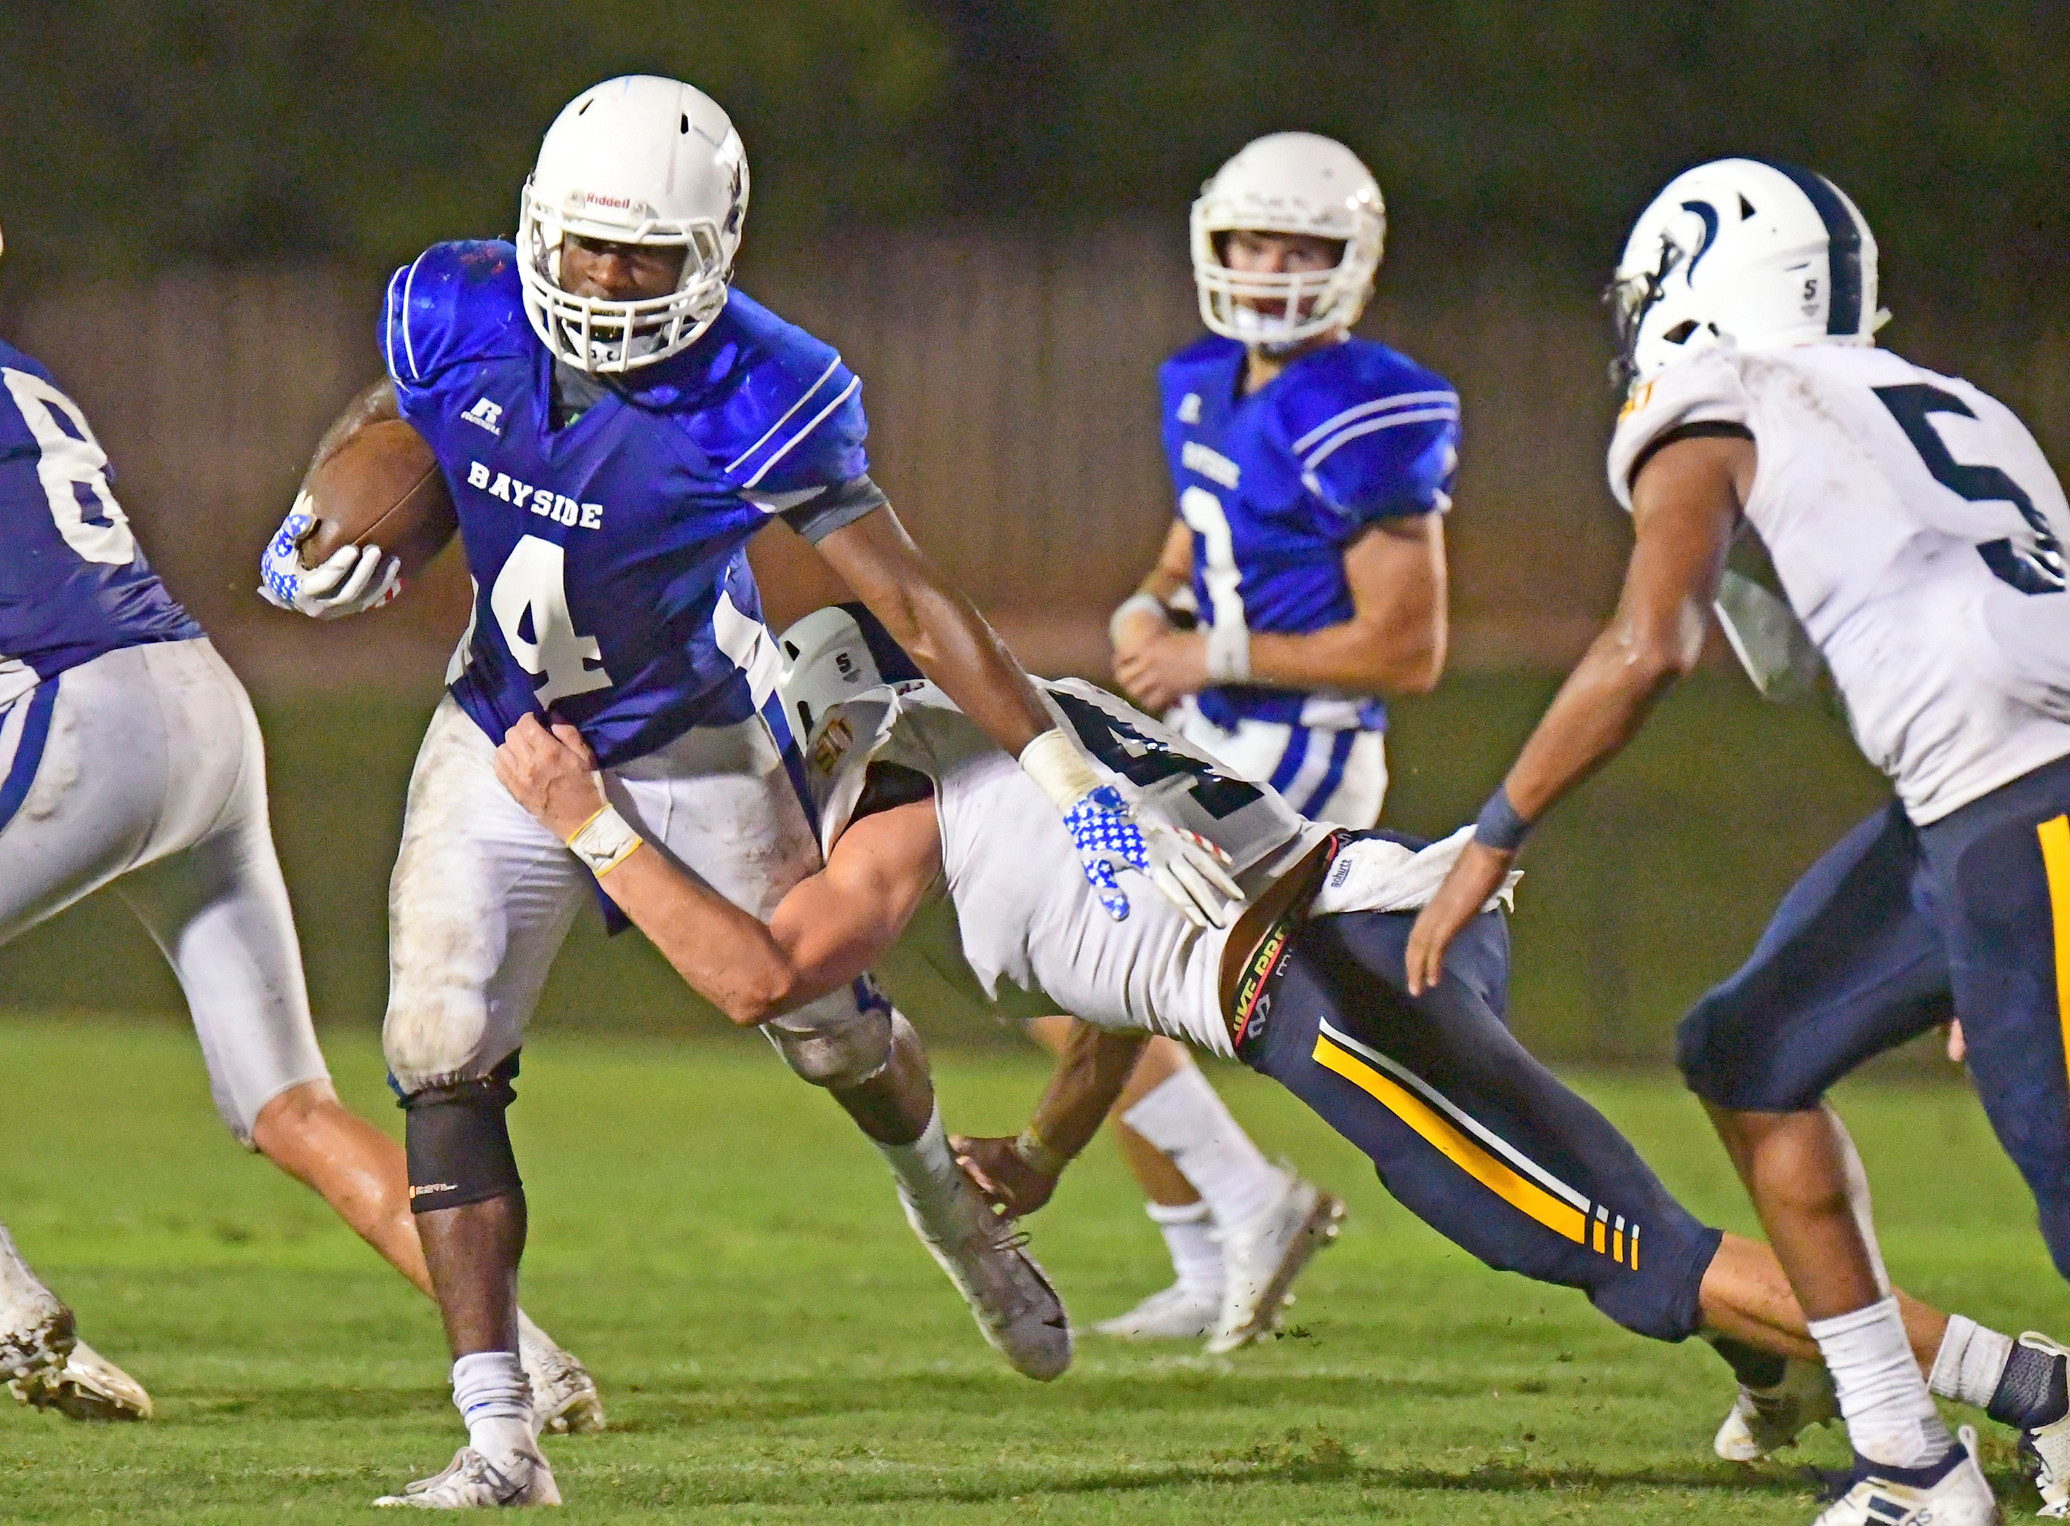 Nathan Cook (4) fends off a tackler for extra Bayside yardage at Freedom Field. The senior scored two touchdowns for the Admirals.